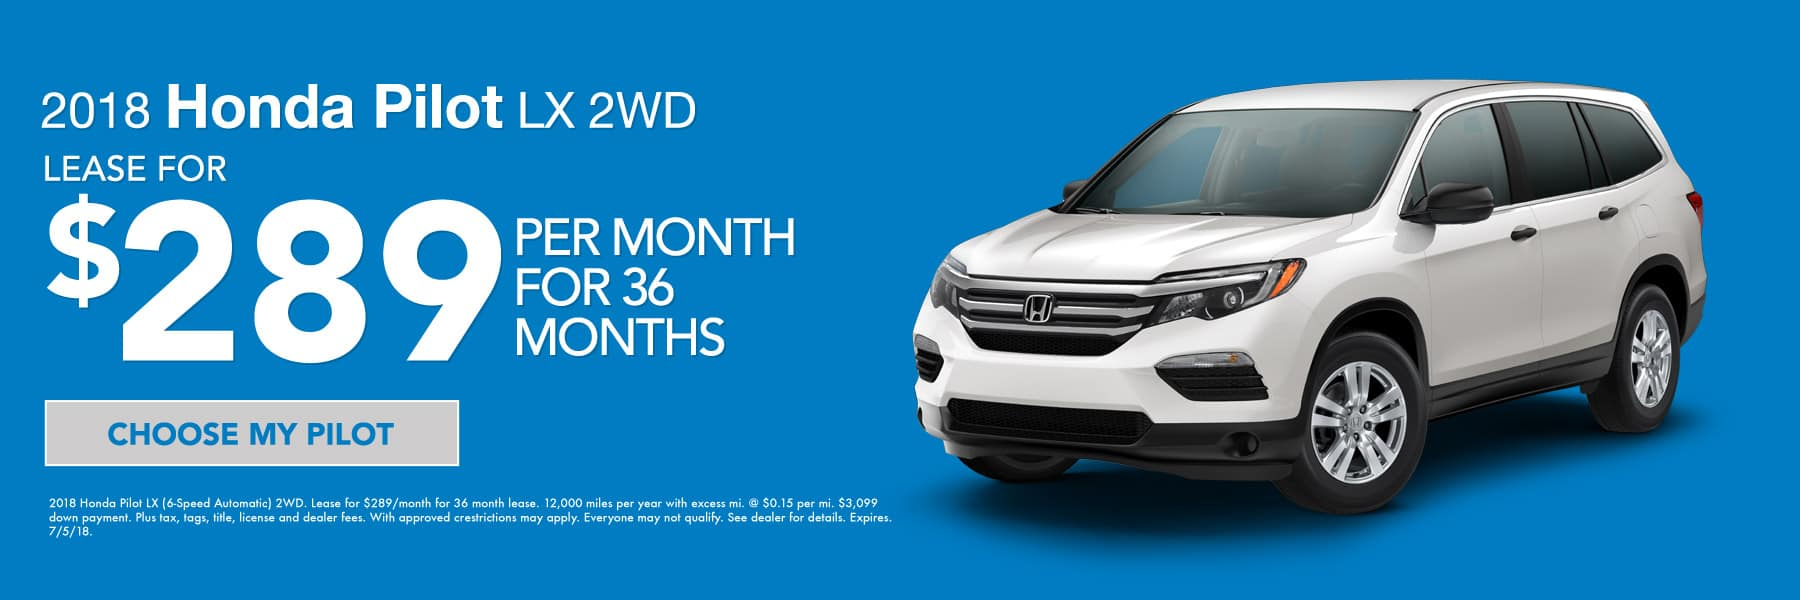 2018 Honda Pilot LX 2WD - Lease for $289/month for 36 months - Choose my Pilot